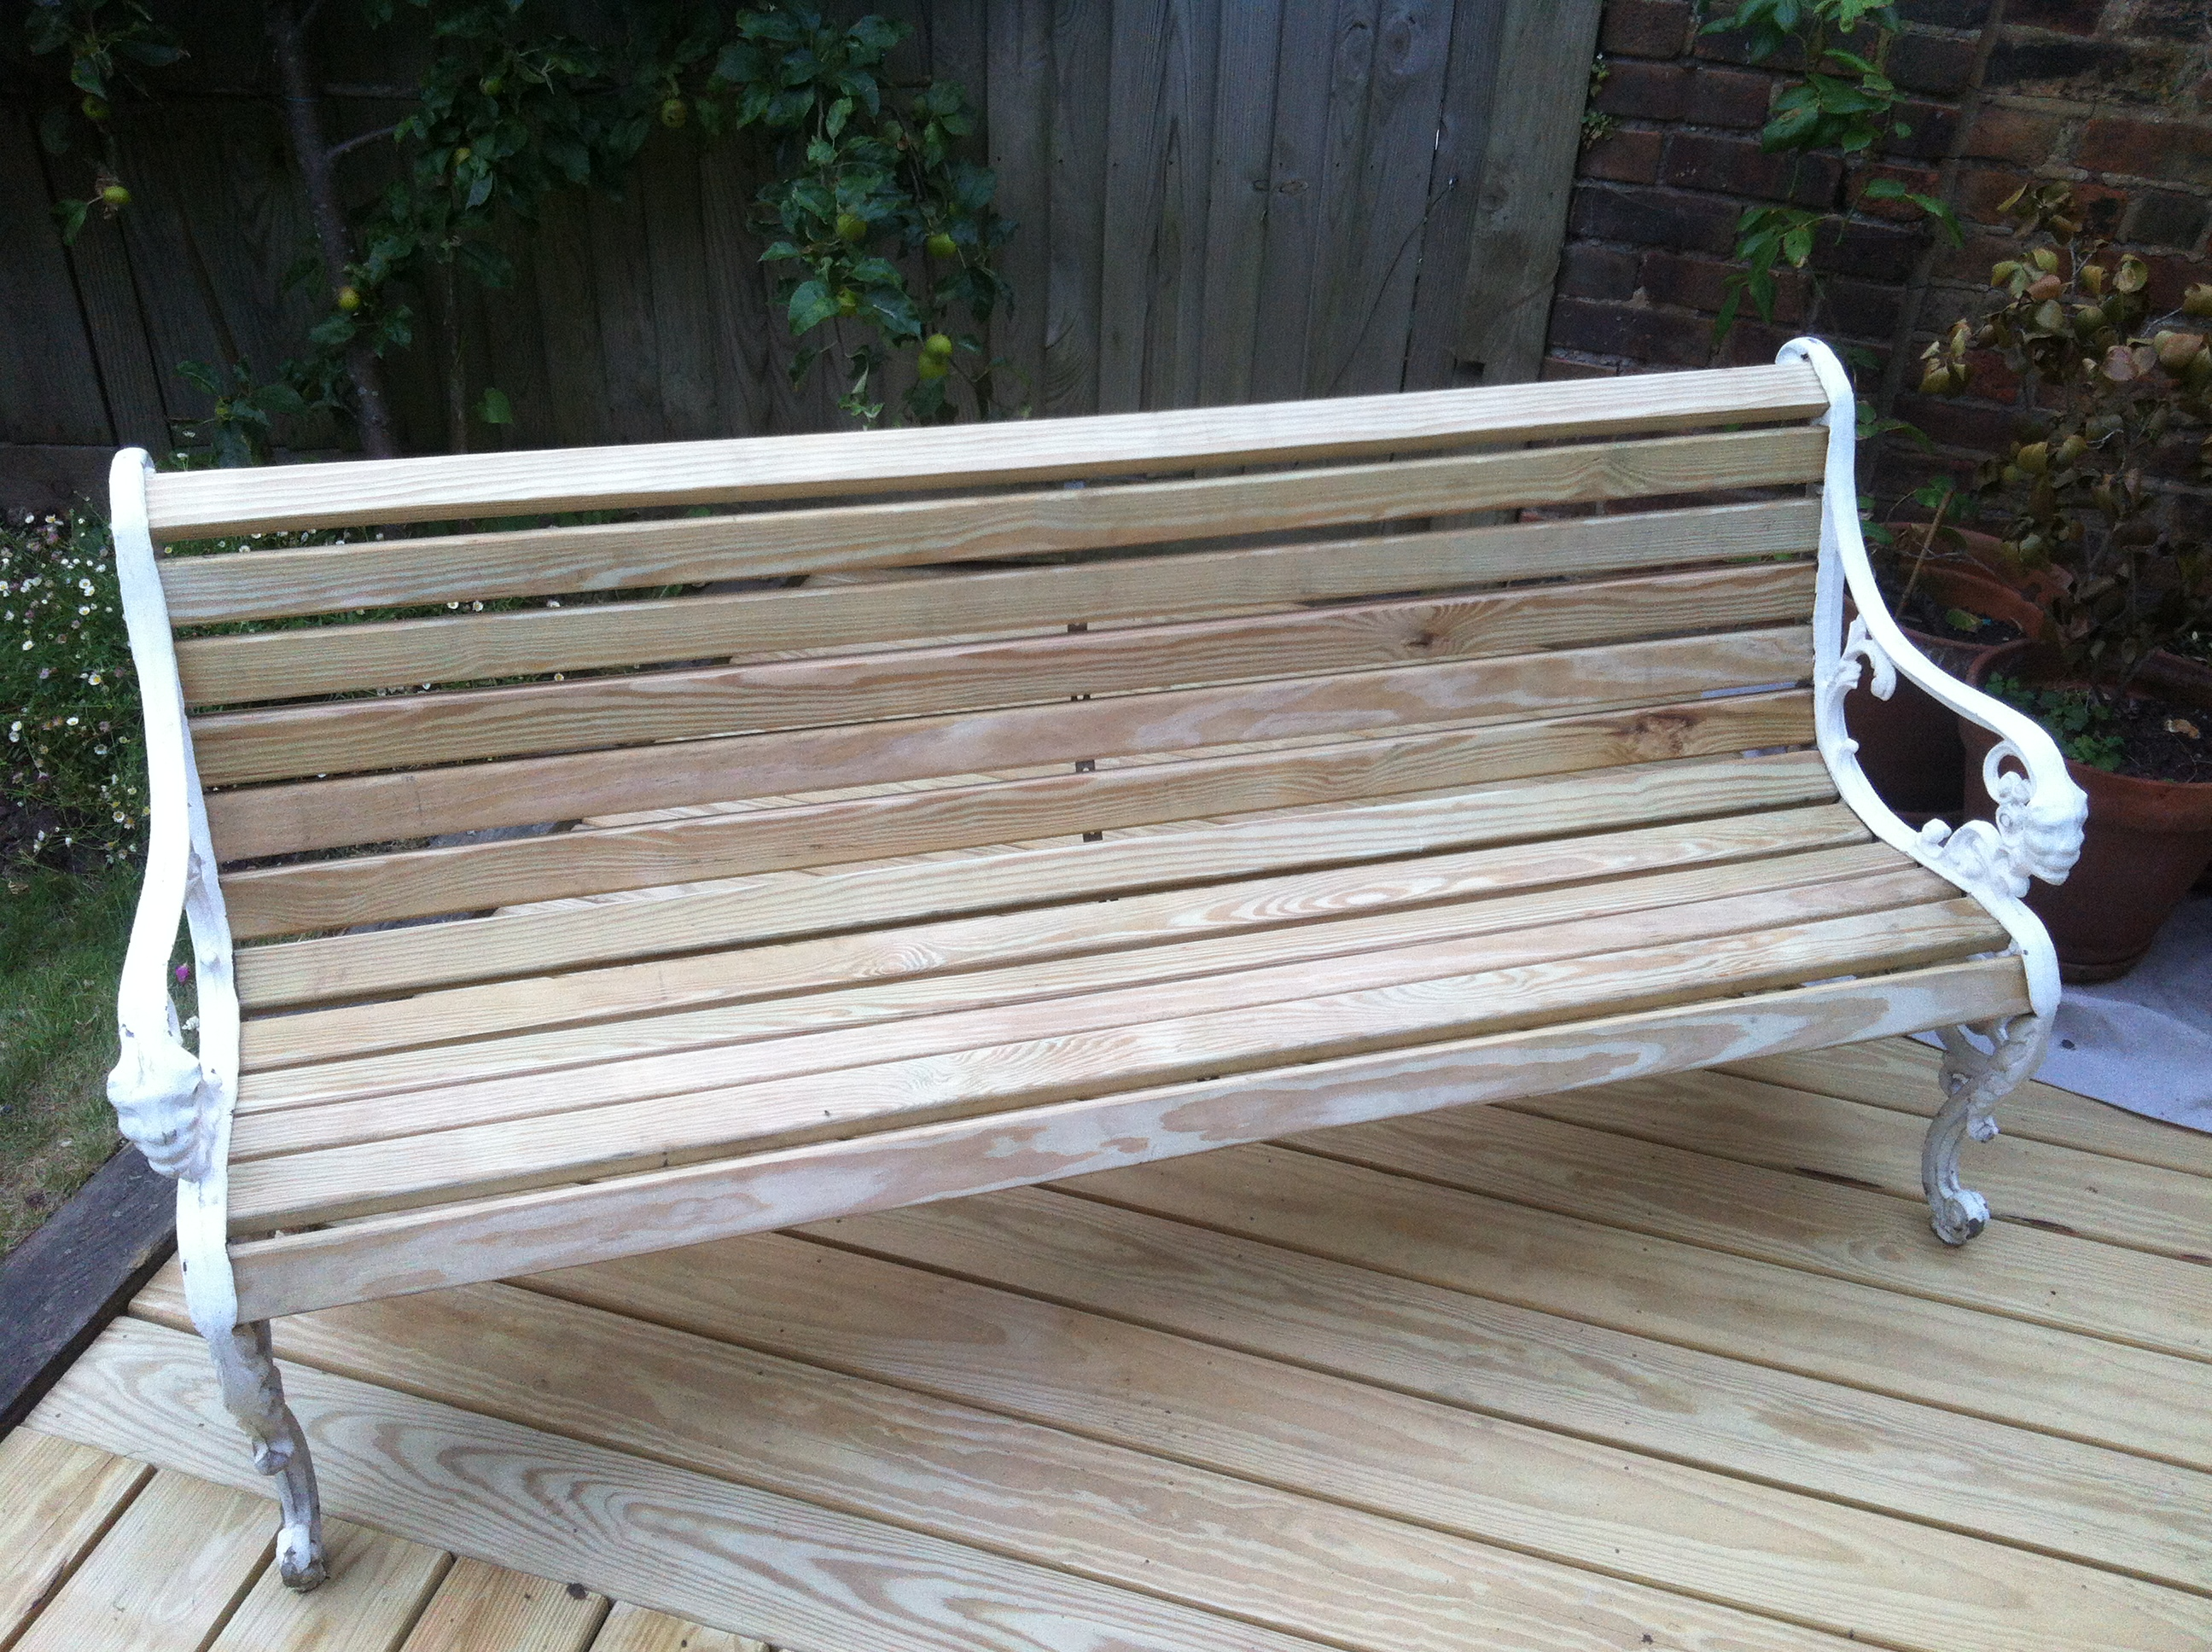 New Decking, Old Bench